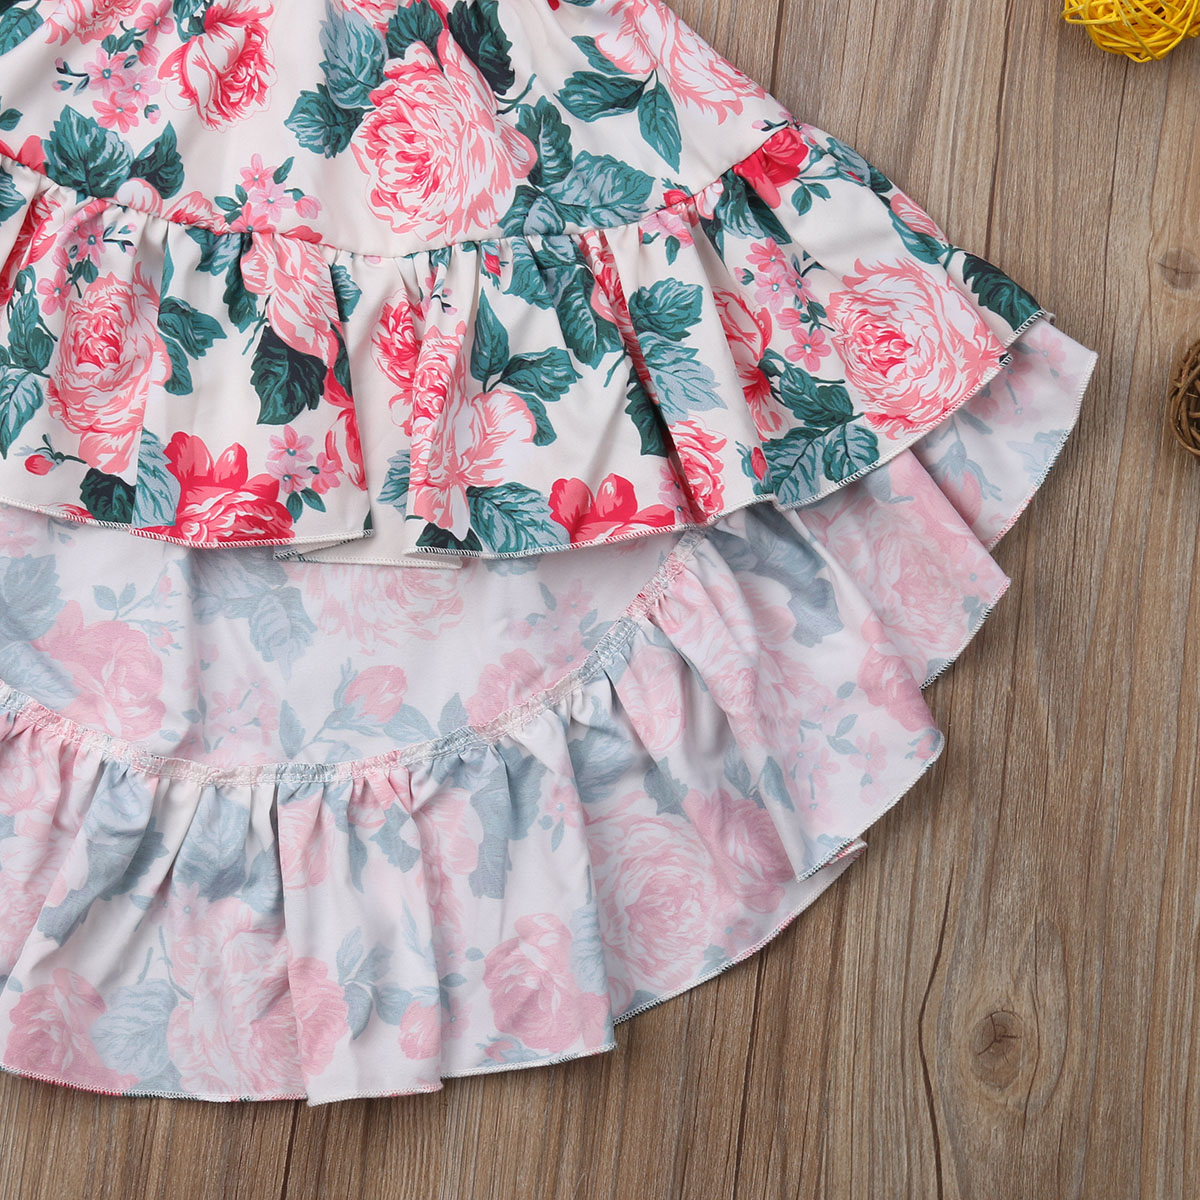 Sleeveless Tops Party Dress Summer outfit Toddler Kids Baby Girl Maxi Skirt